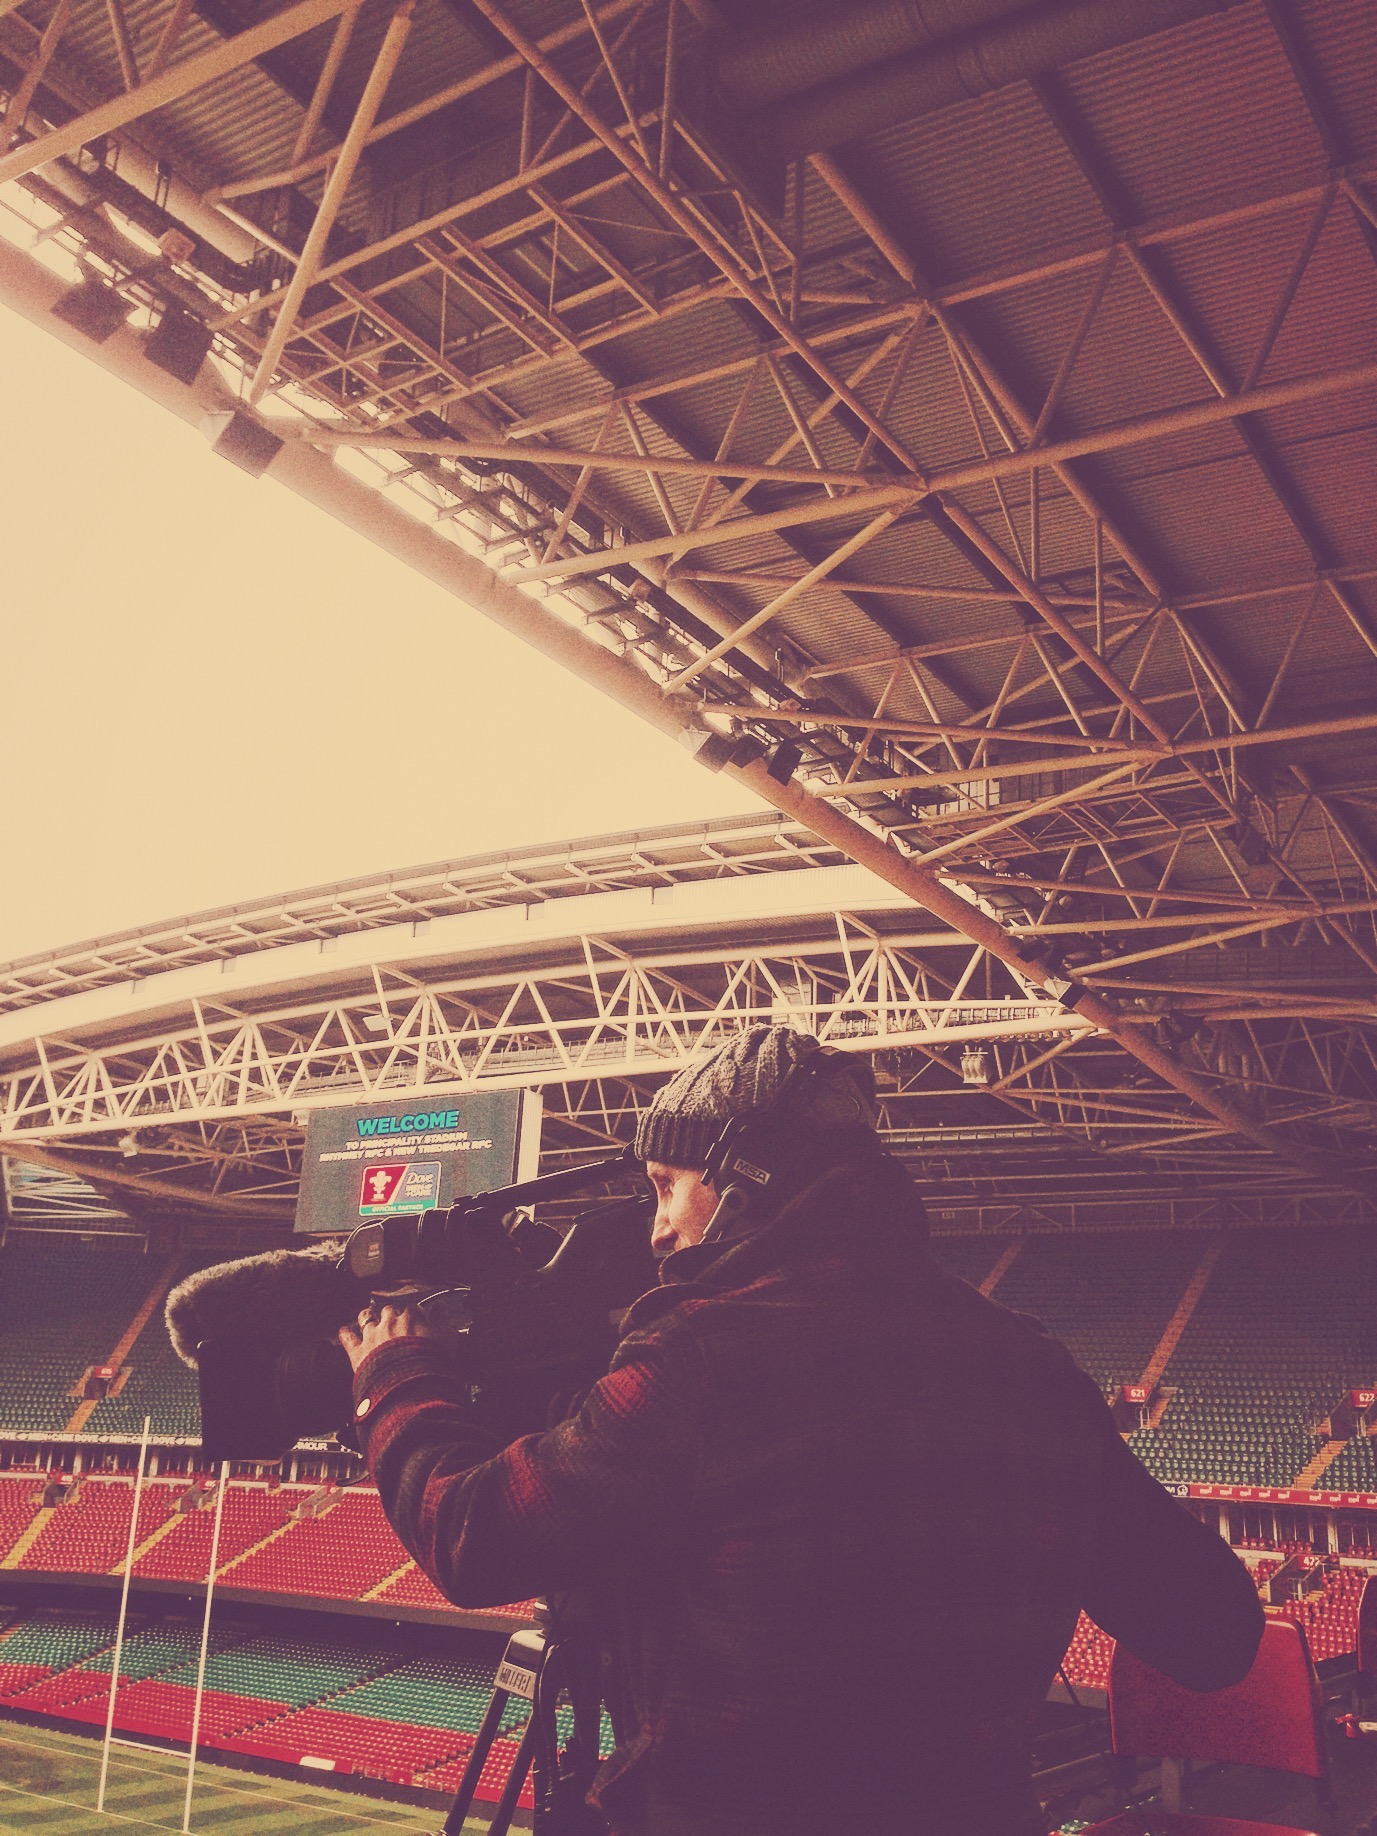 Jonny Lewis filming at Principality Stadium, Wales. -